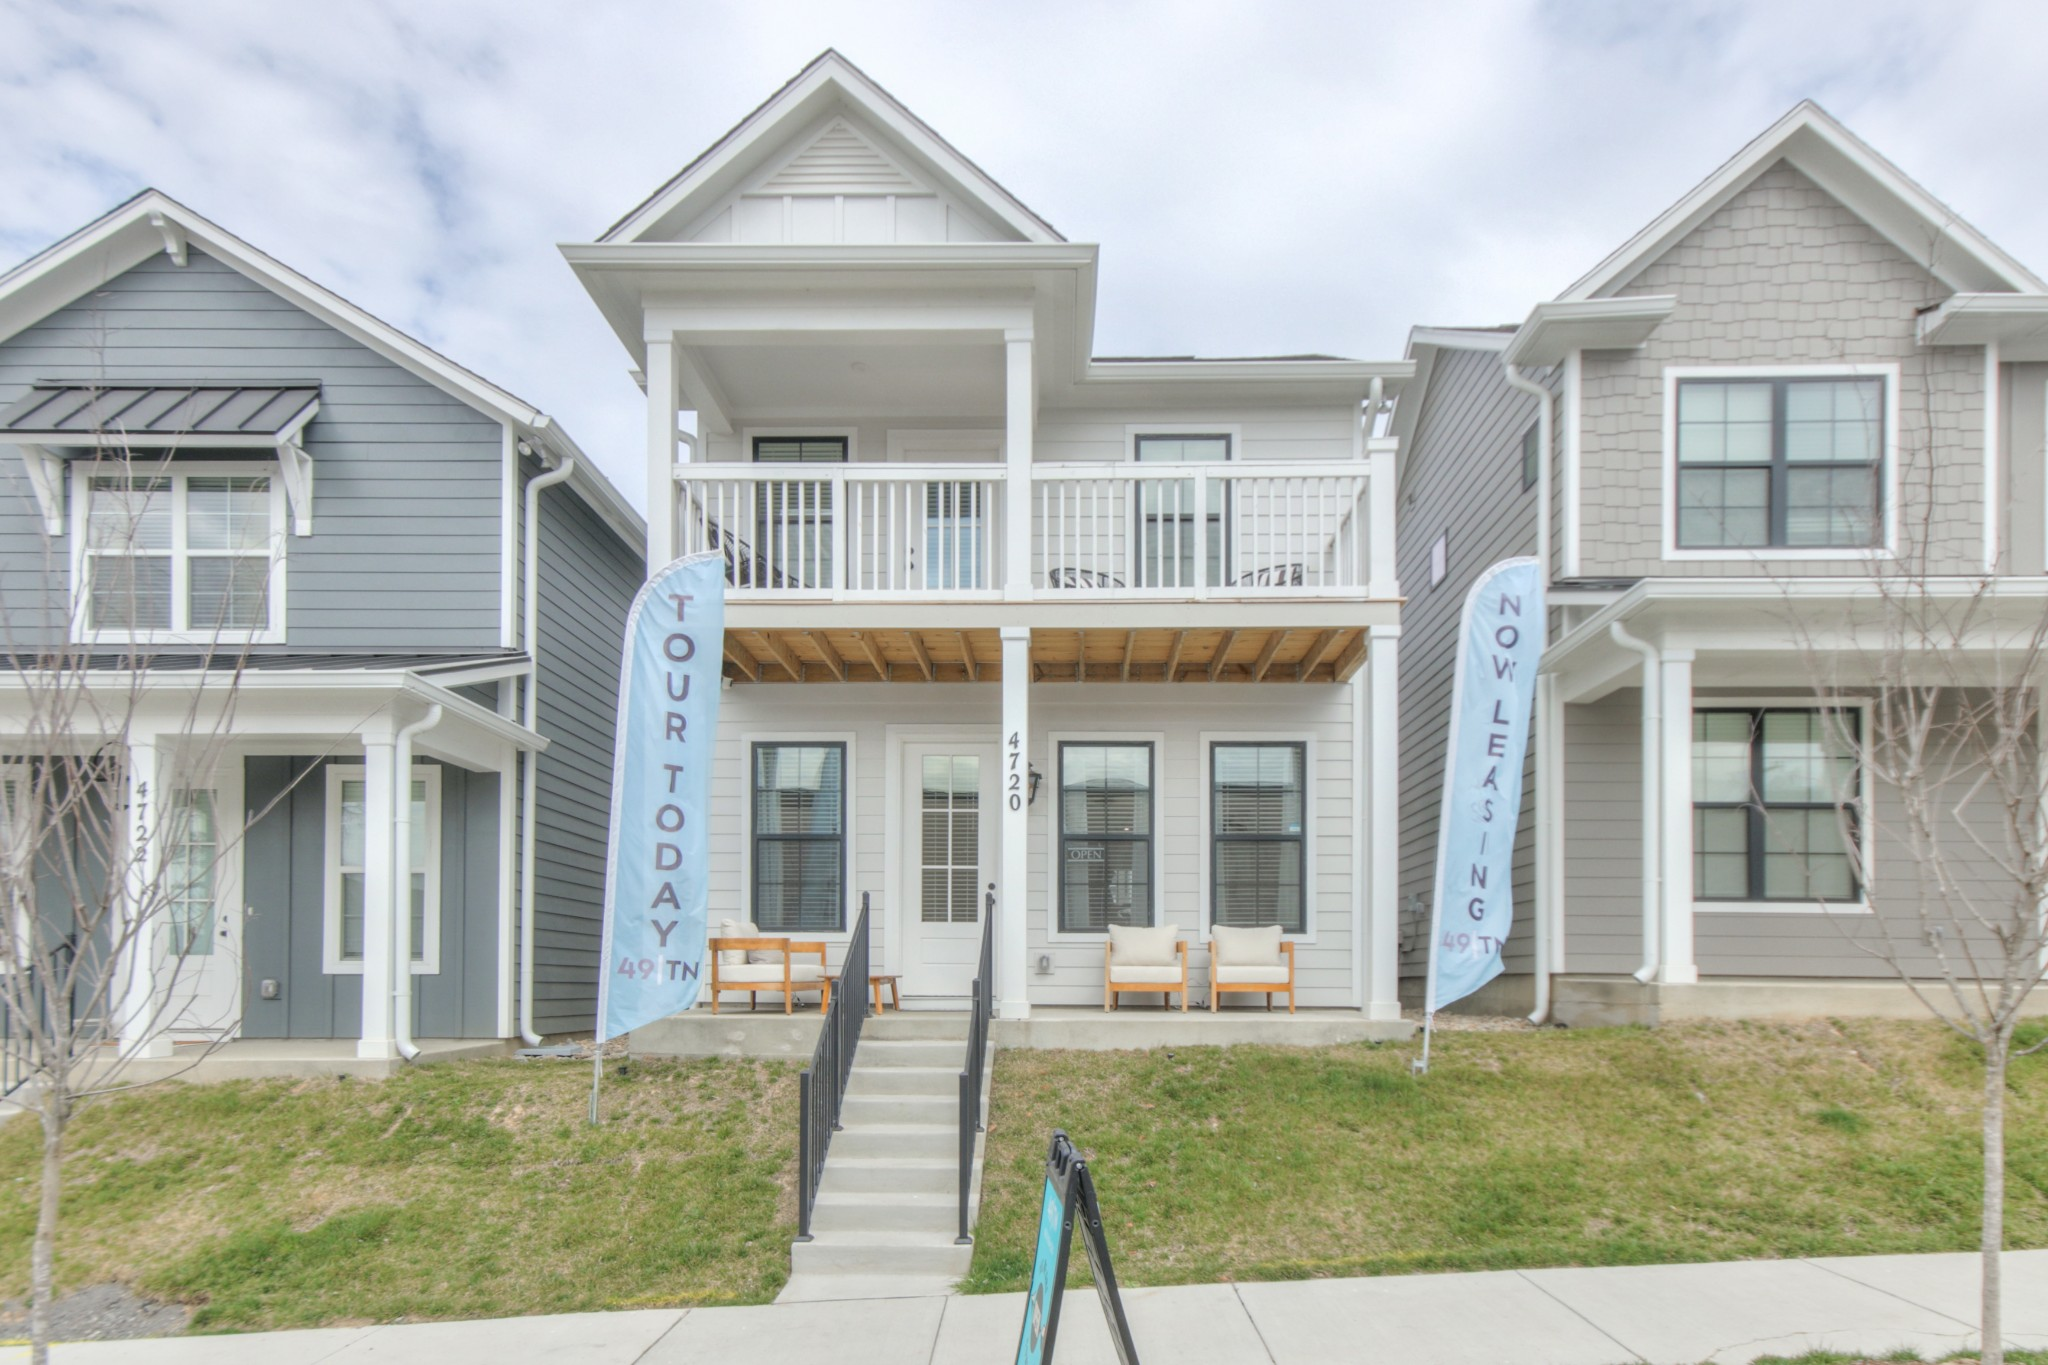 4720 Tennessee Ave Property Photo - Nashville, TN real estate listing